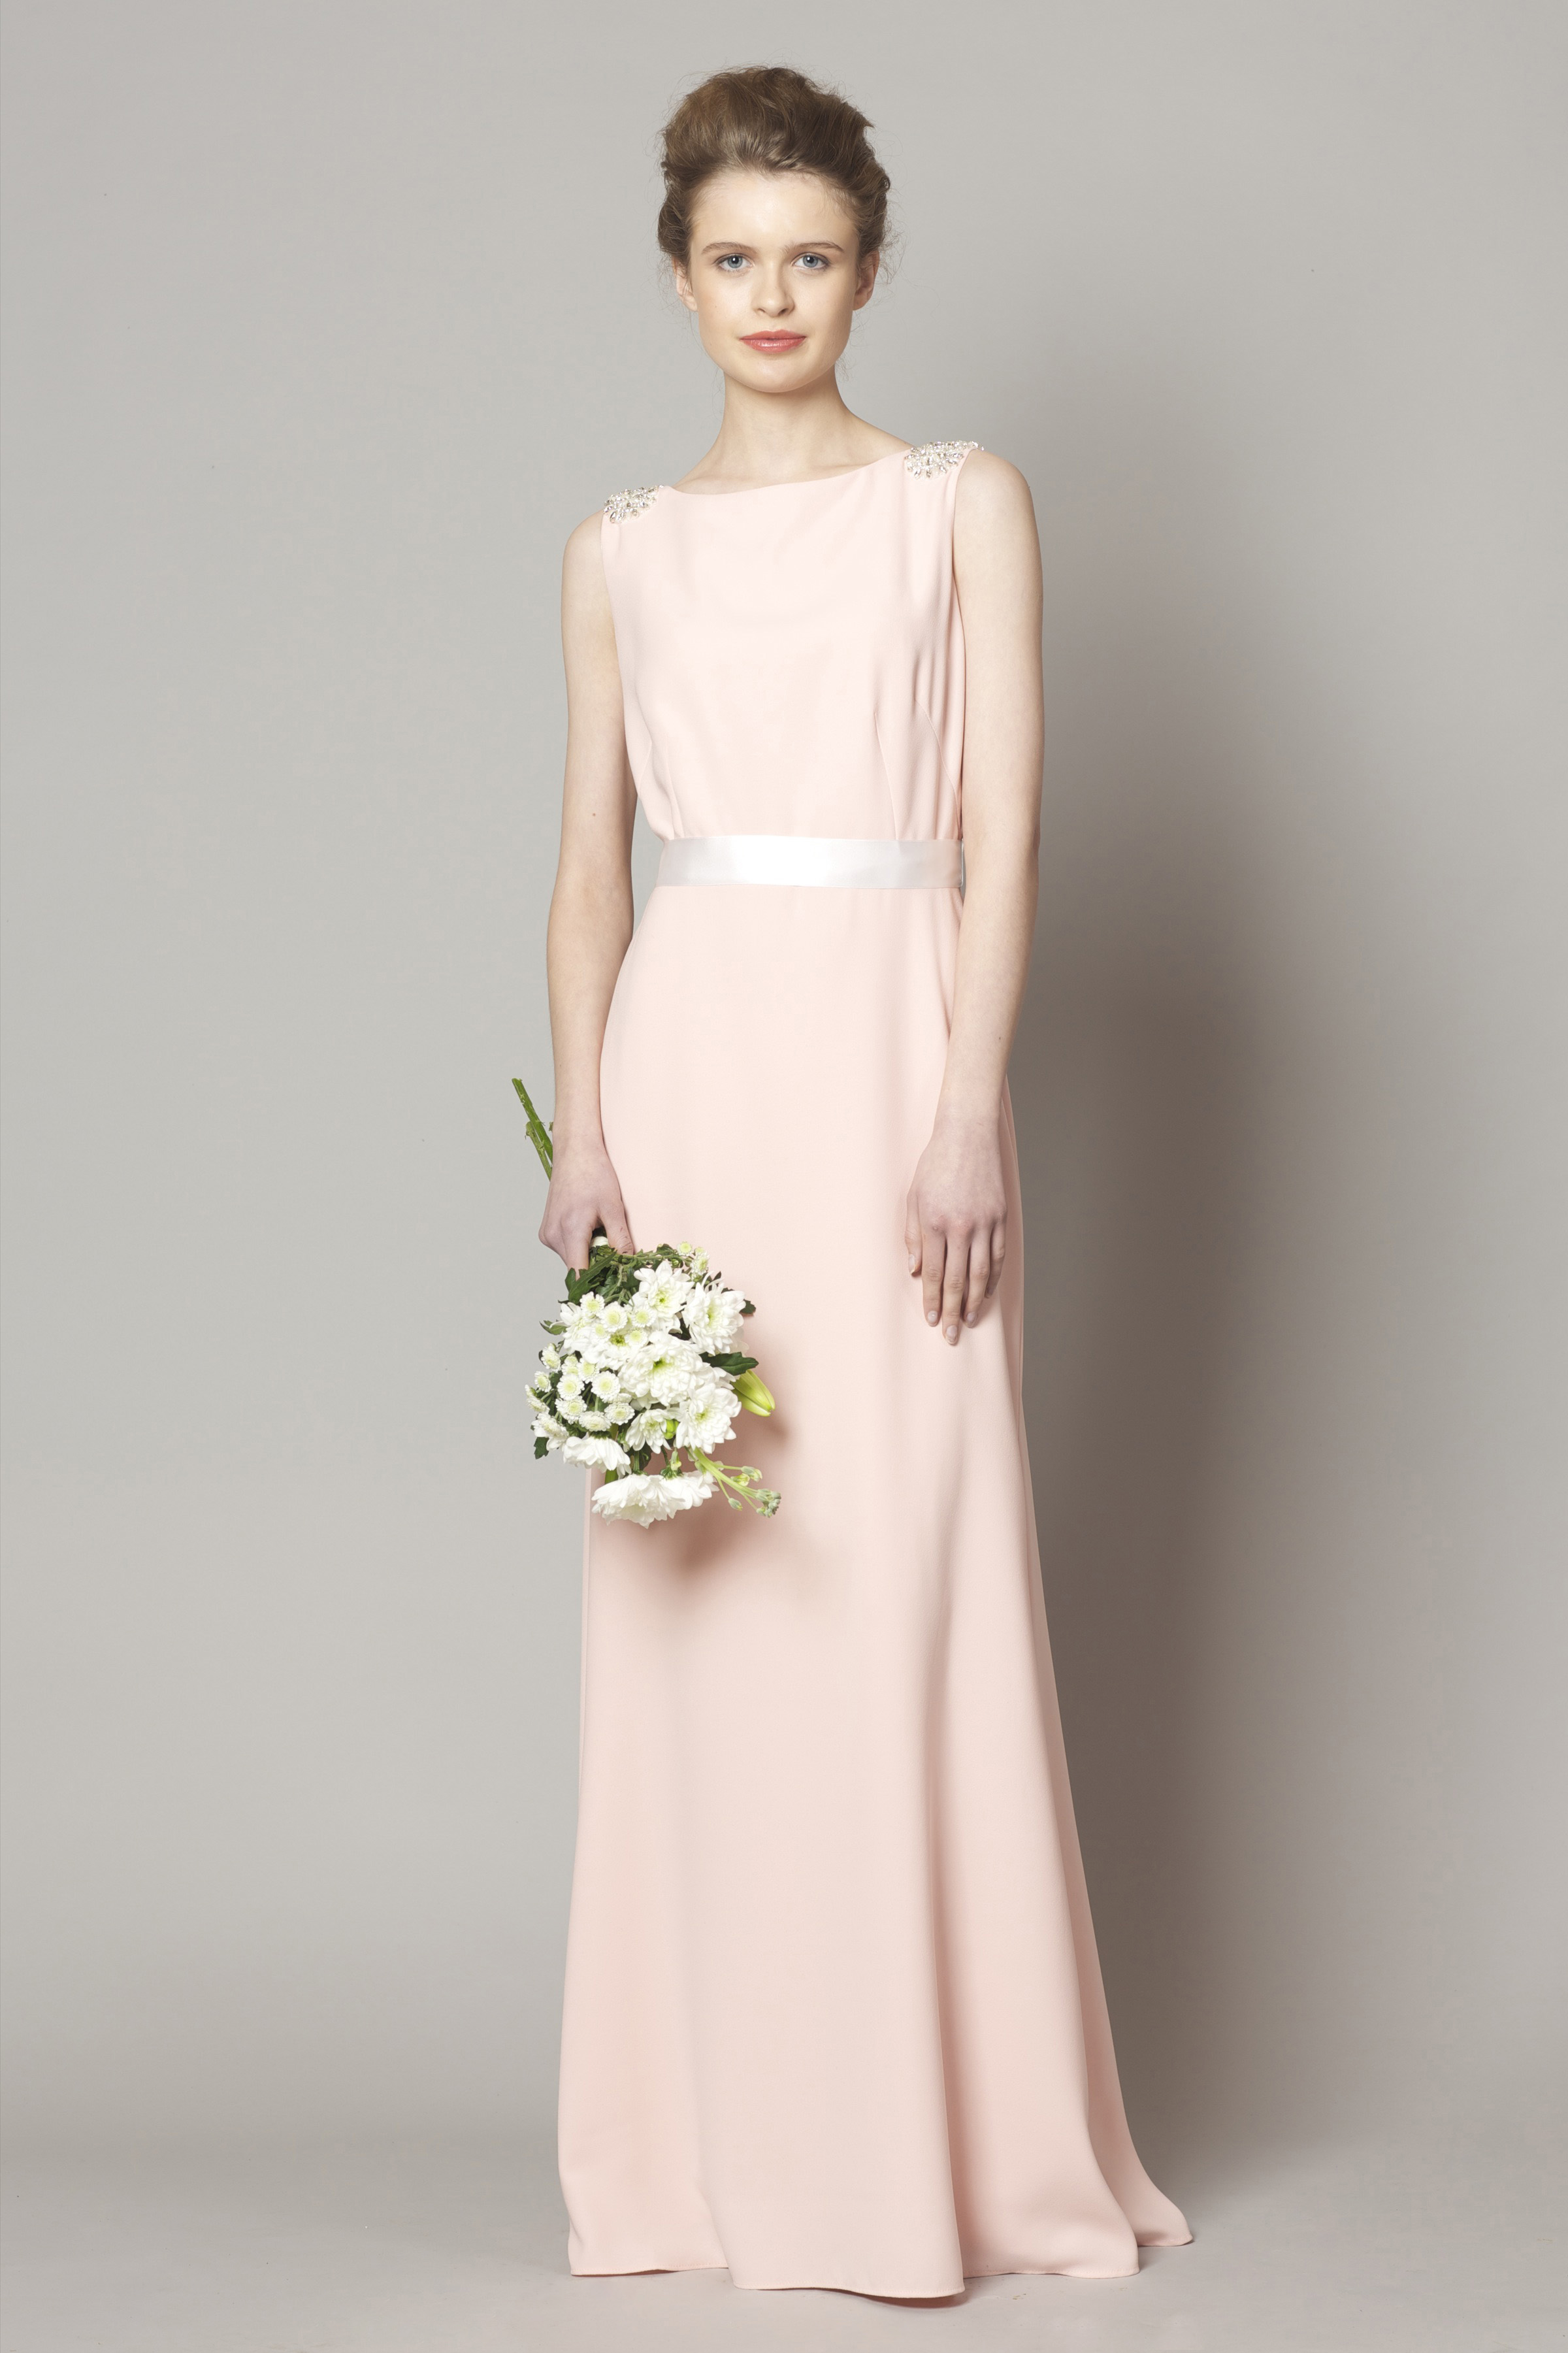 d998bb8c44bca Salmon pink style DC1178 - Bridesmaid Evening   Debs Dresses from Dresscode